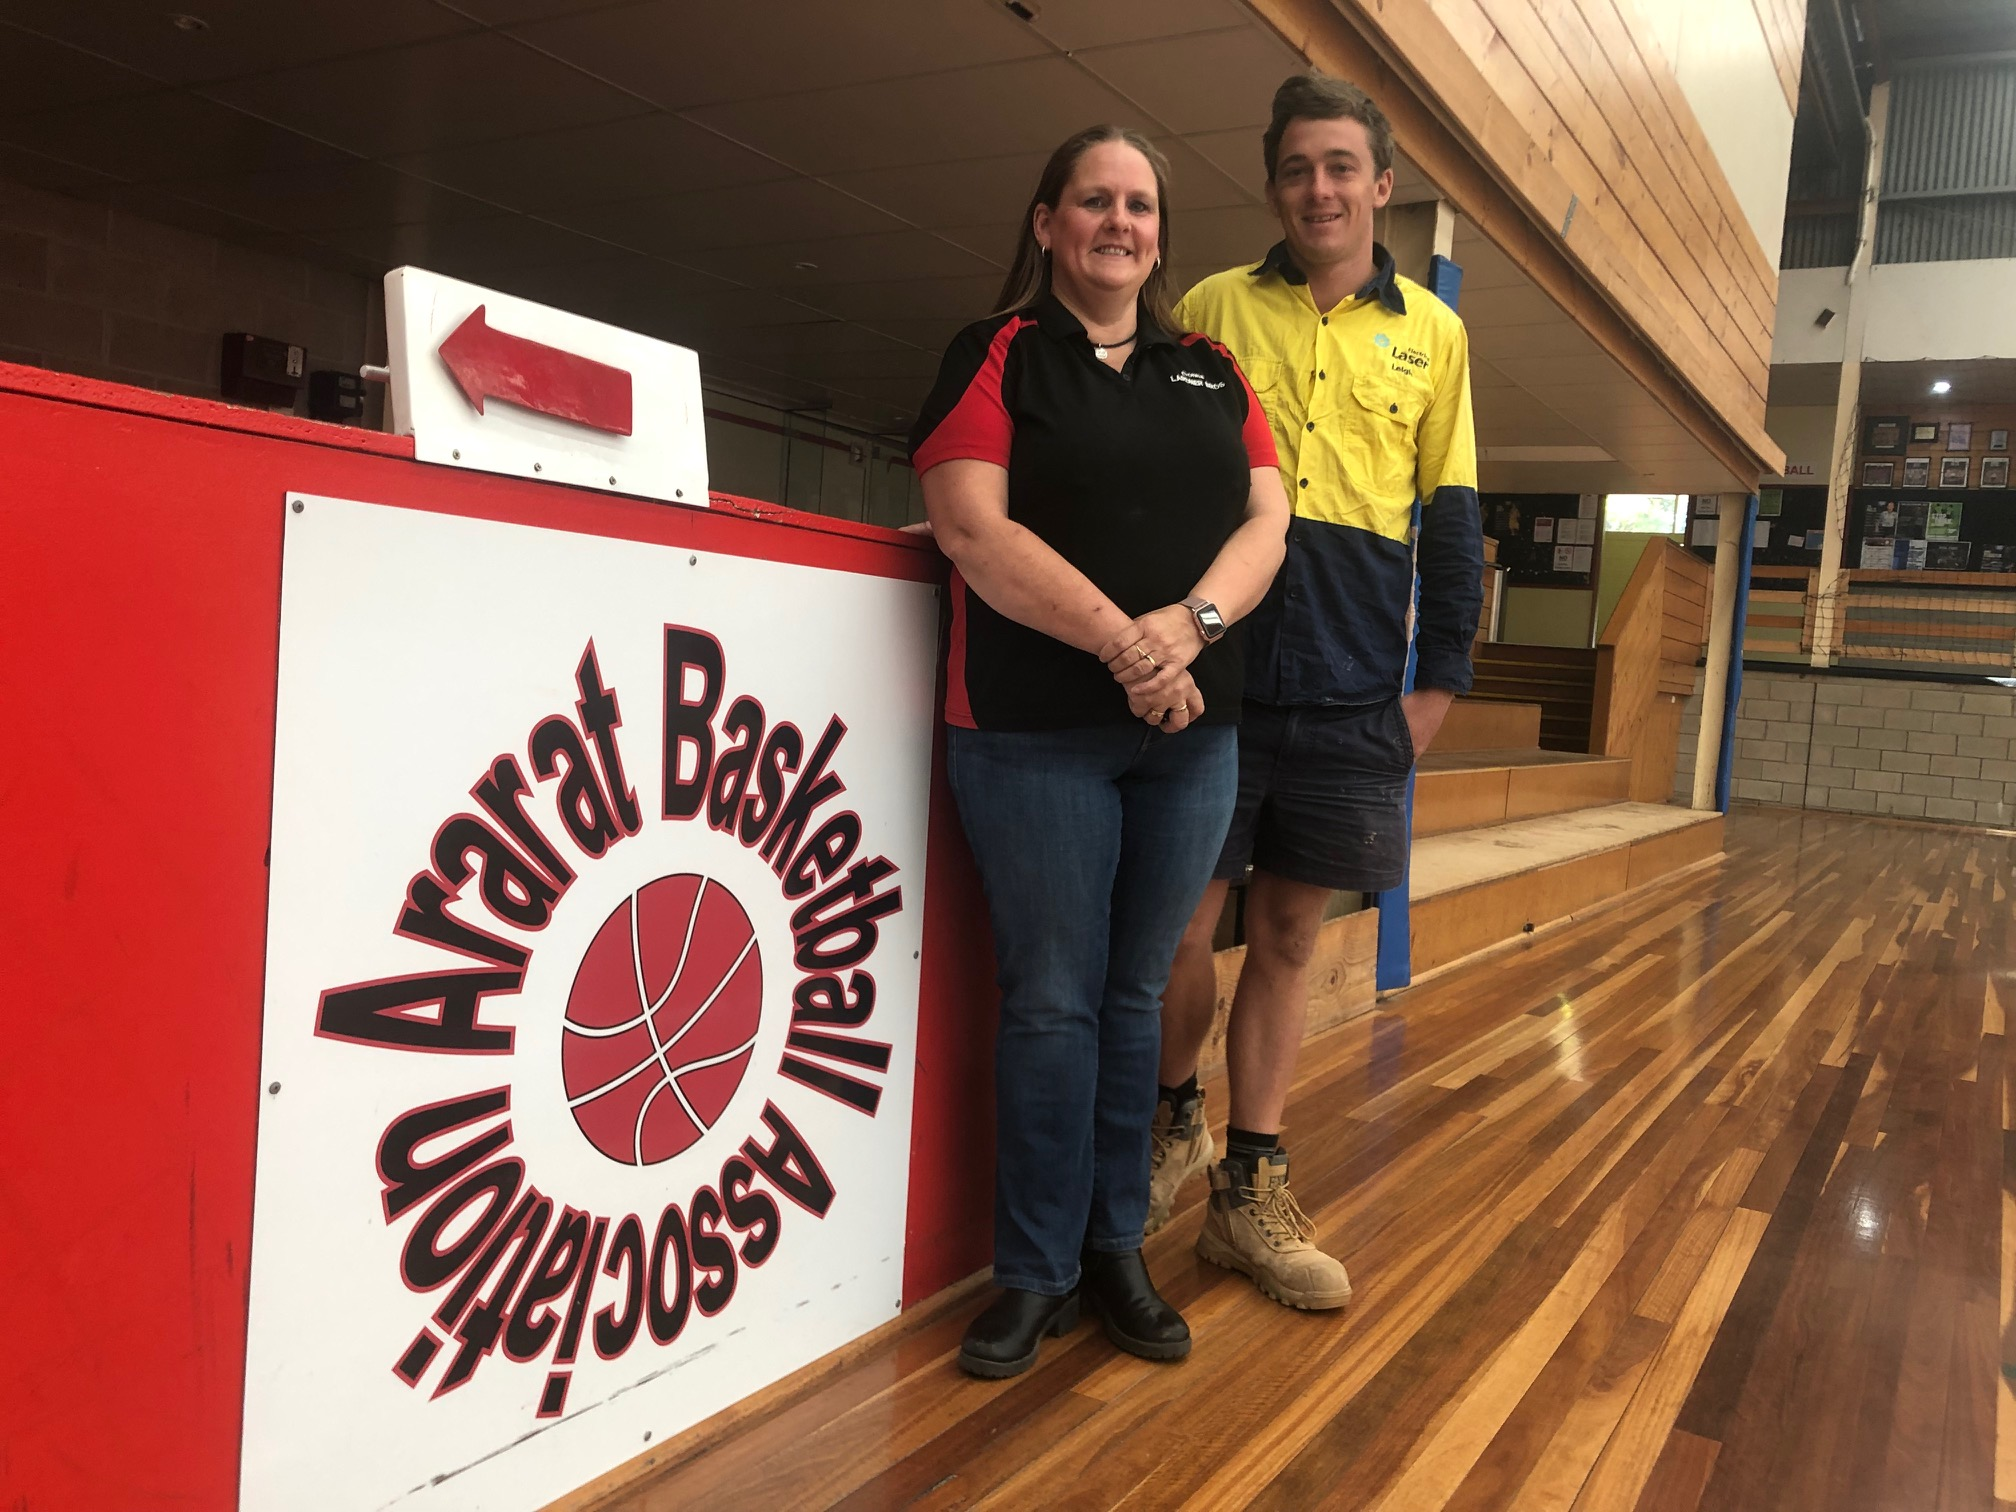 Air conditioning to make playing more pleasant for basketballers